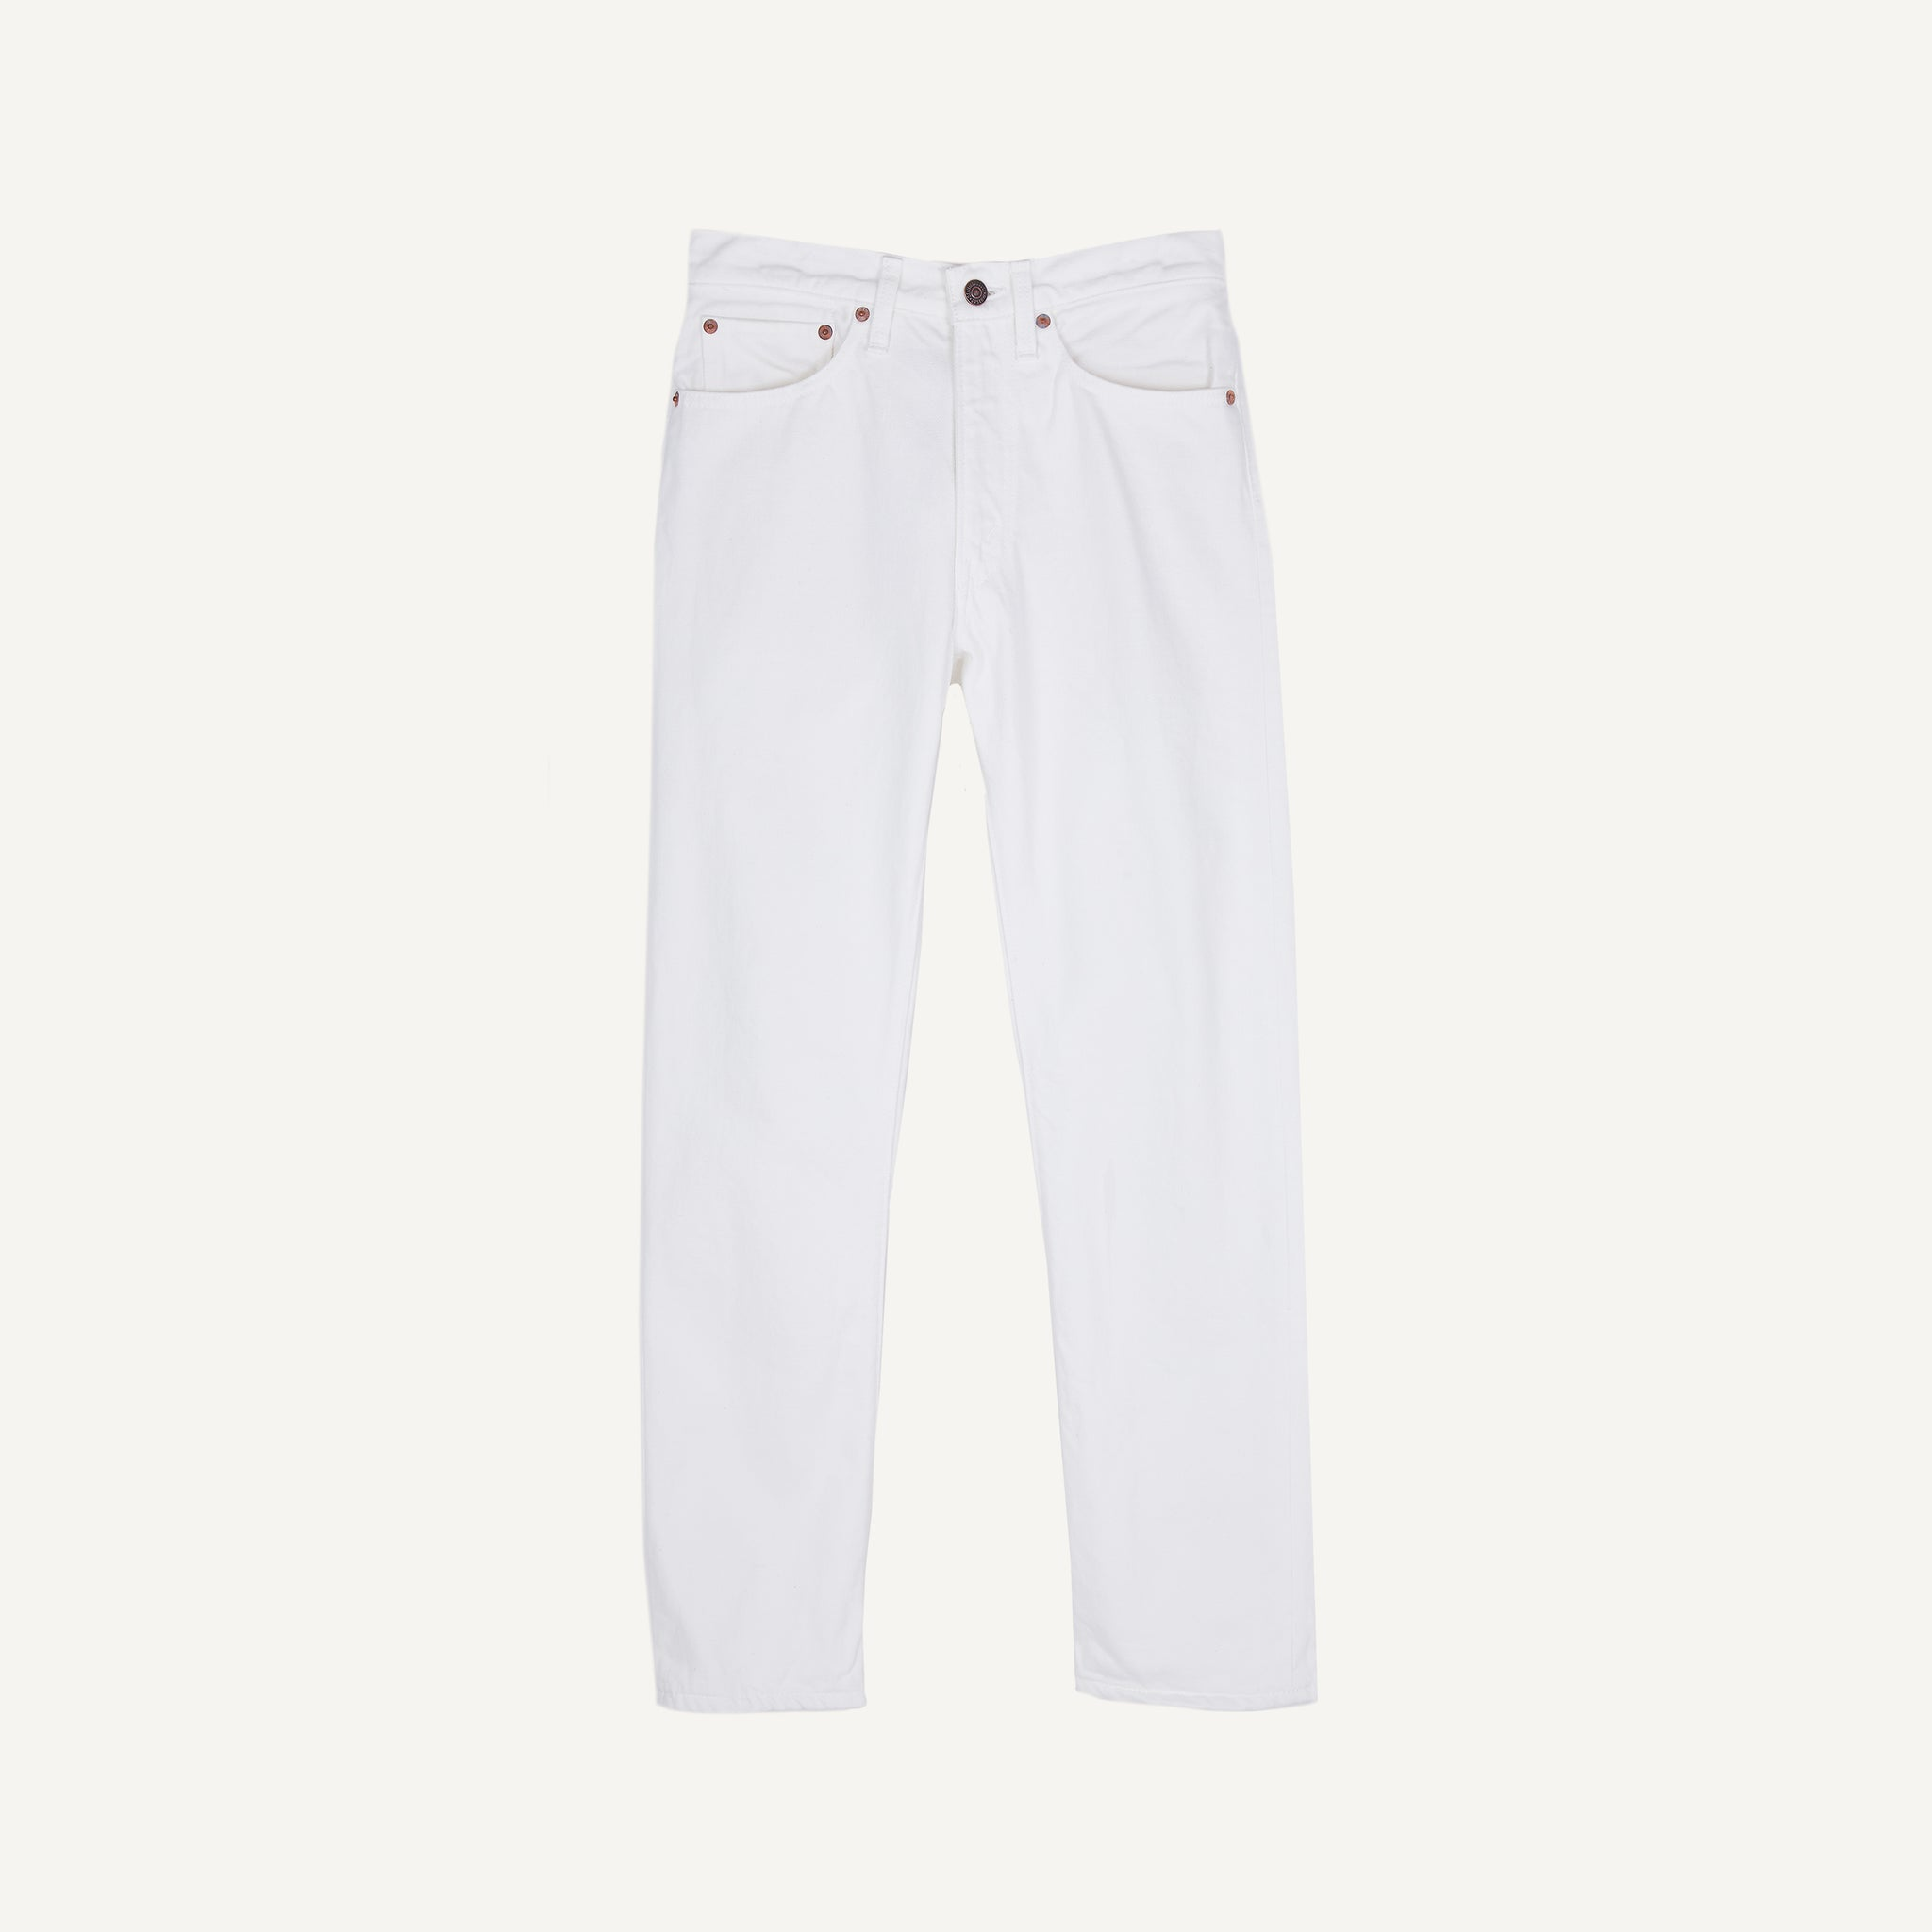 ORSLOW 107 WHITE DENIM